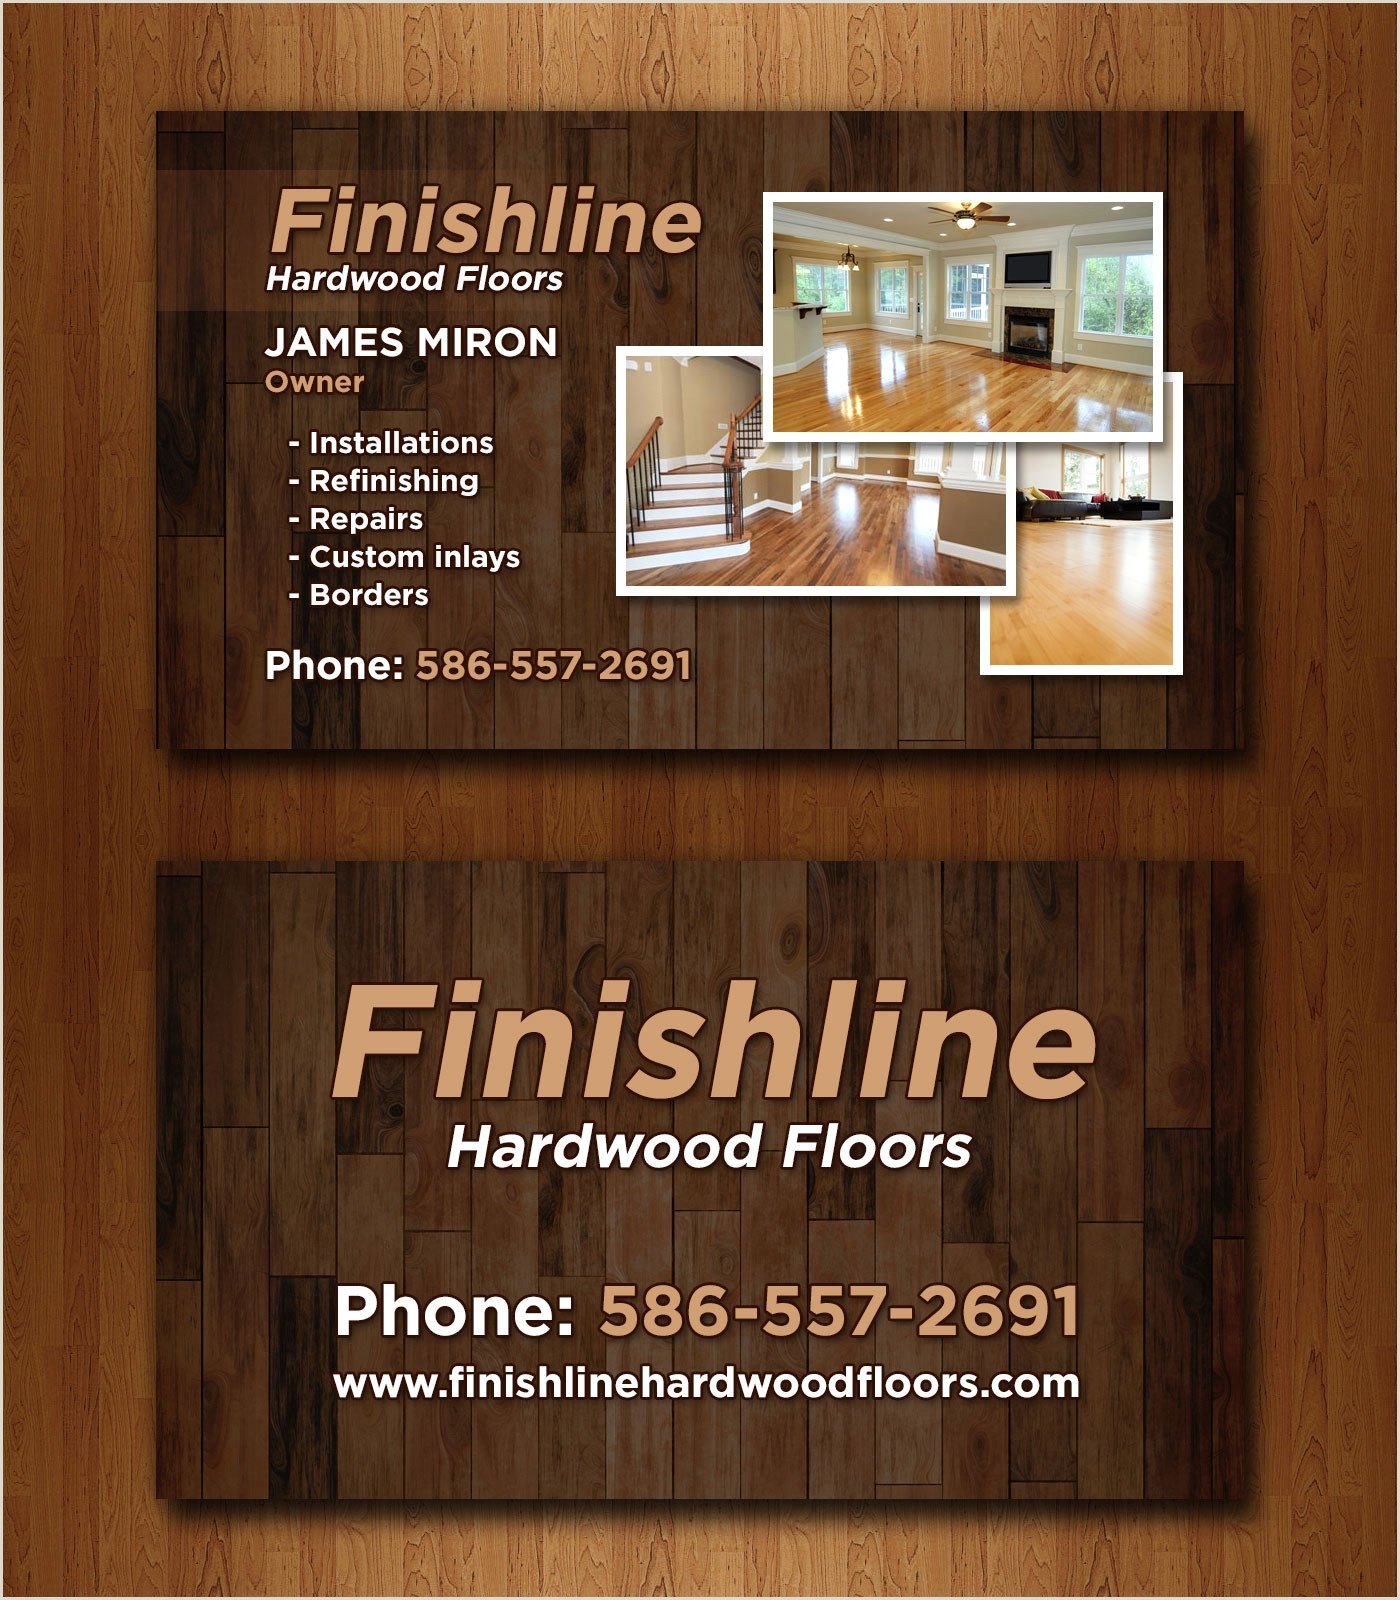 Networking Business Cards Template 14 Popular Hardwood Flooring Business Card Template